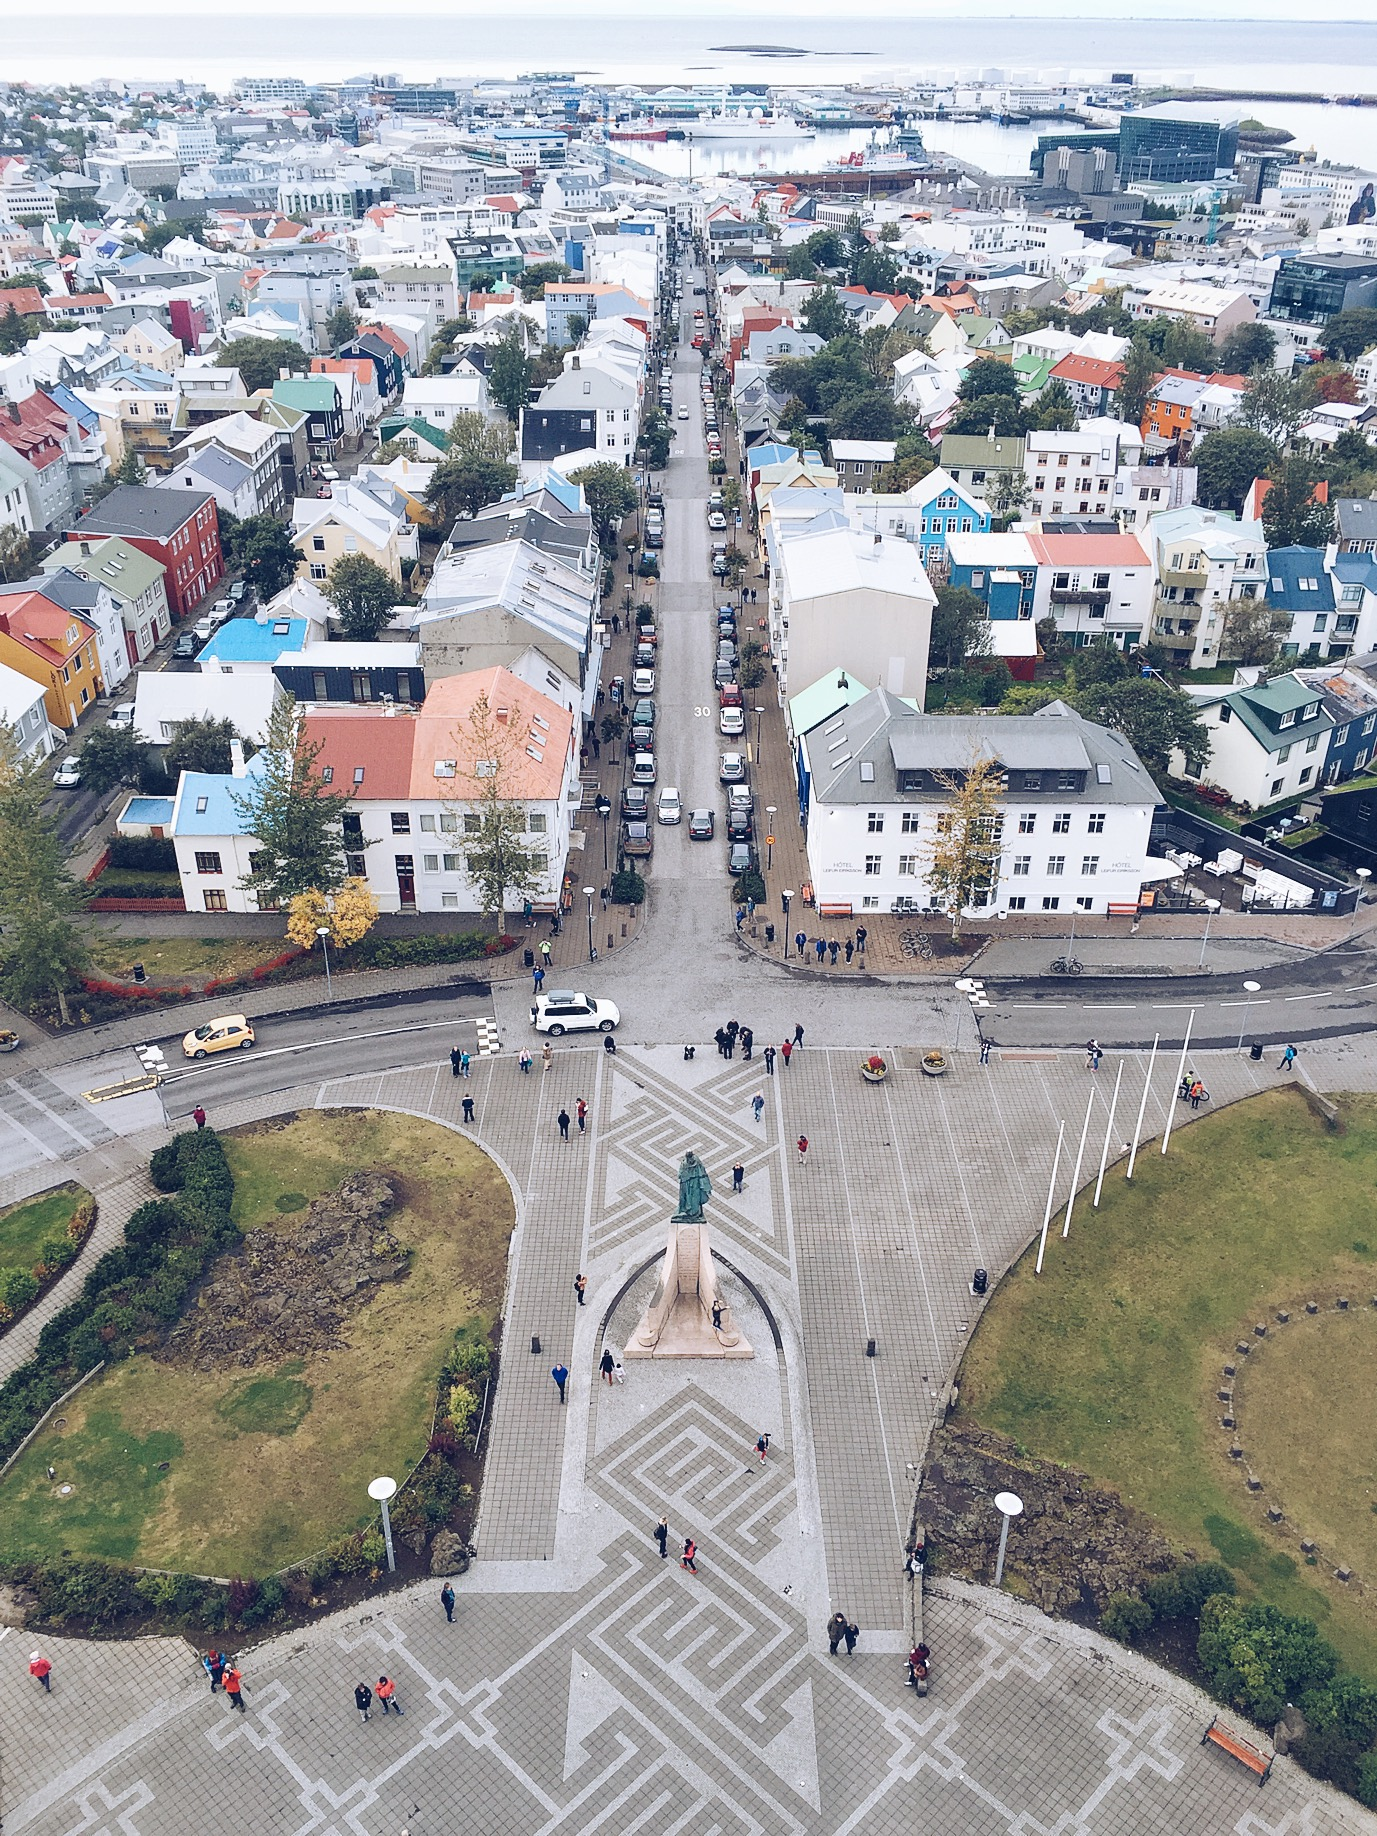 The view from the top of Hallgrímskirkja